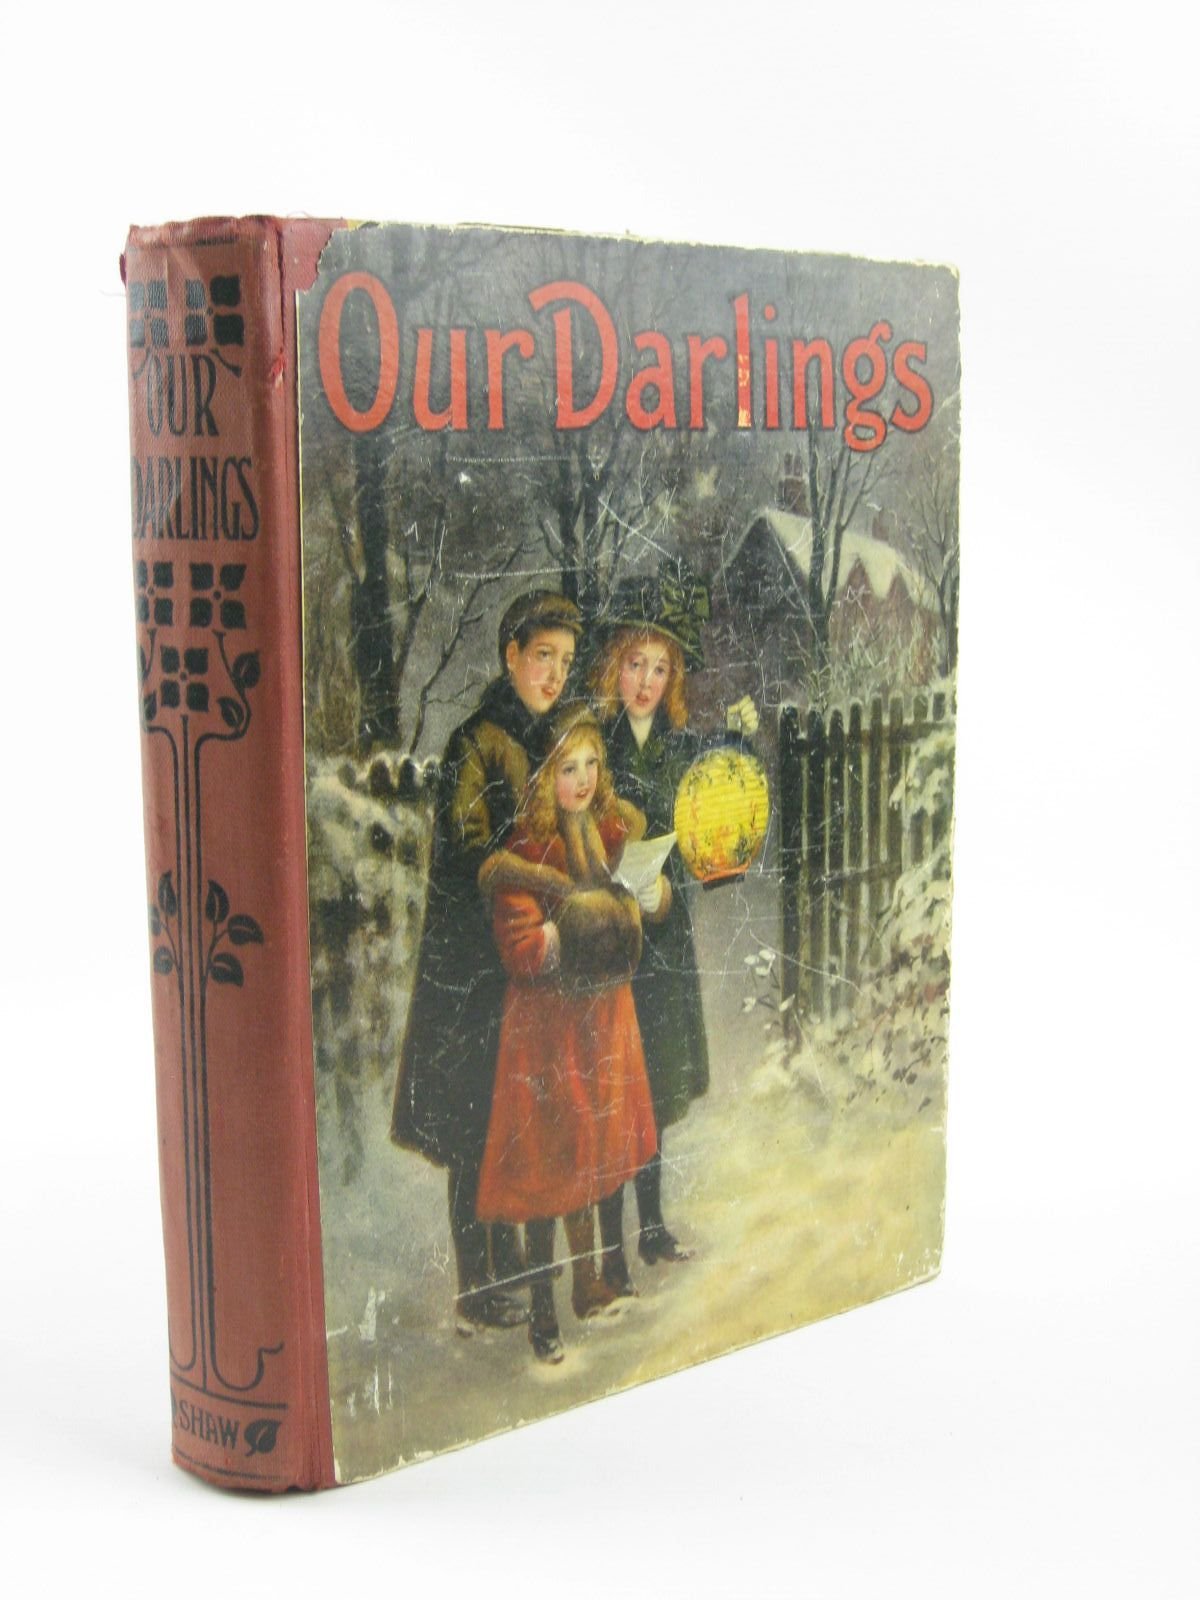 Photo of OUR DARLINGS illustrated by Aris, Ernest A. Wain, Louis Dudley, Ambrose et al.,  published by John F. Shaw & Co Ltd. (STOCK CODE: 1501367)  for sale by Stella & Rose's Books